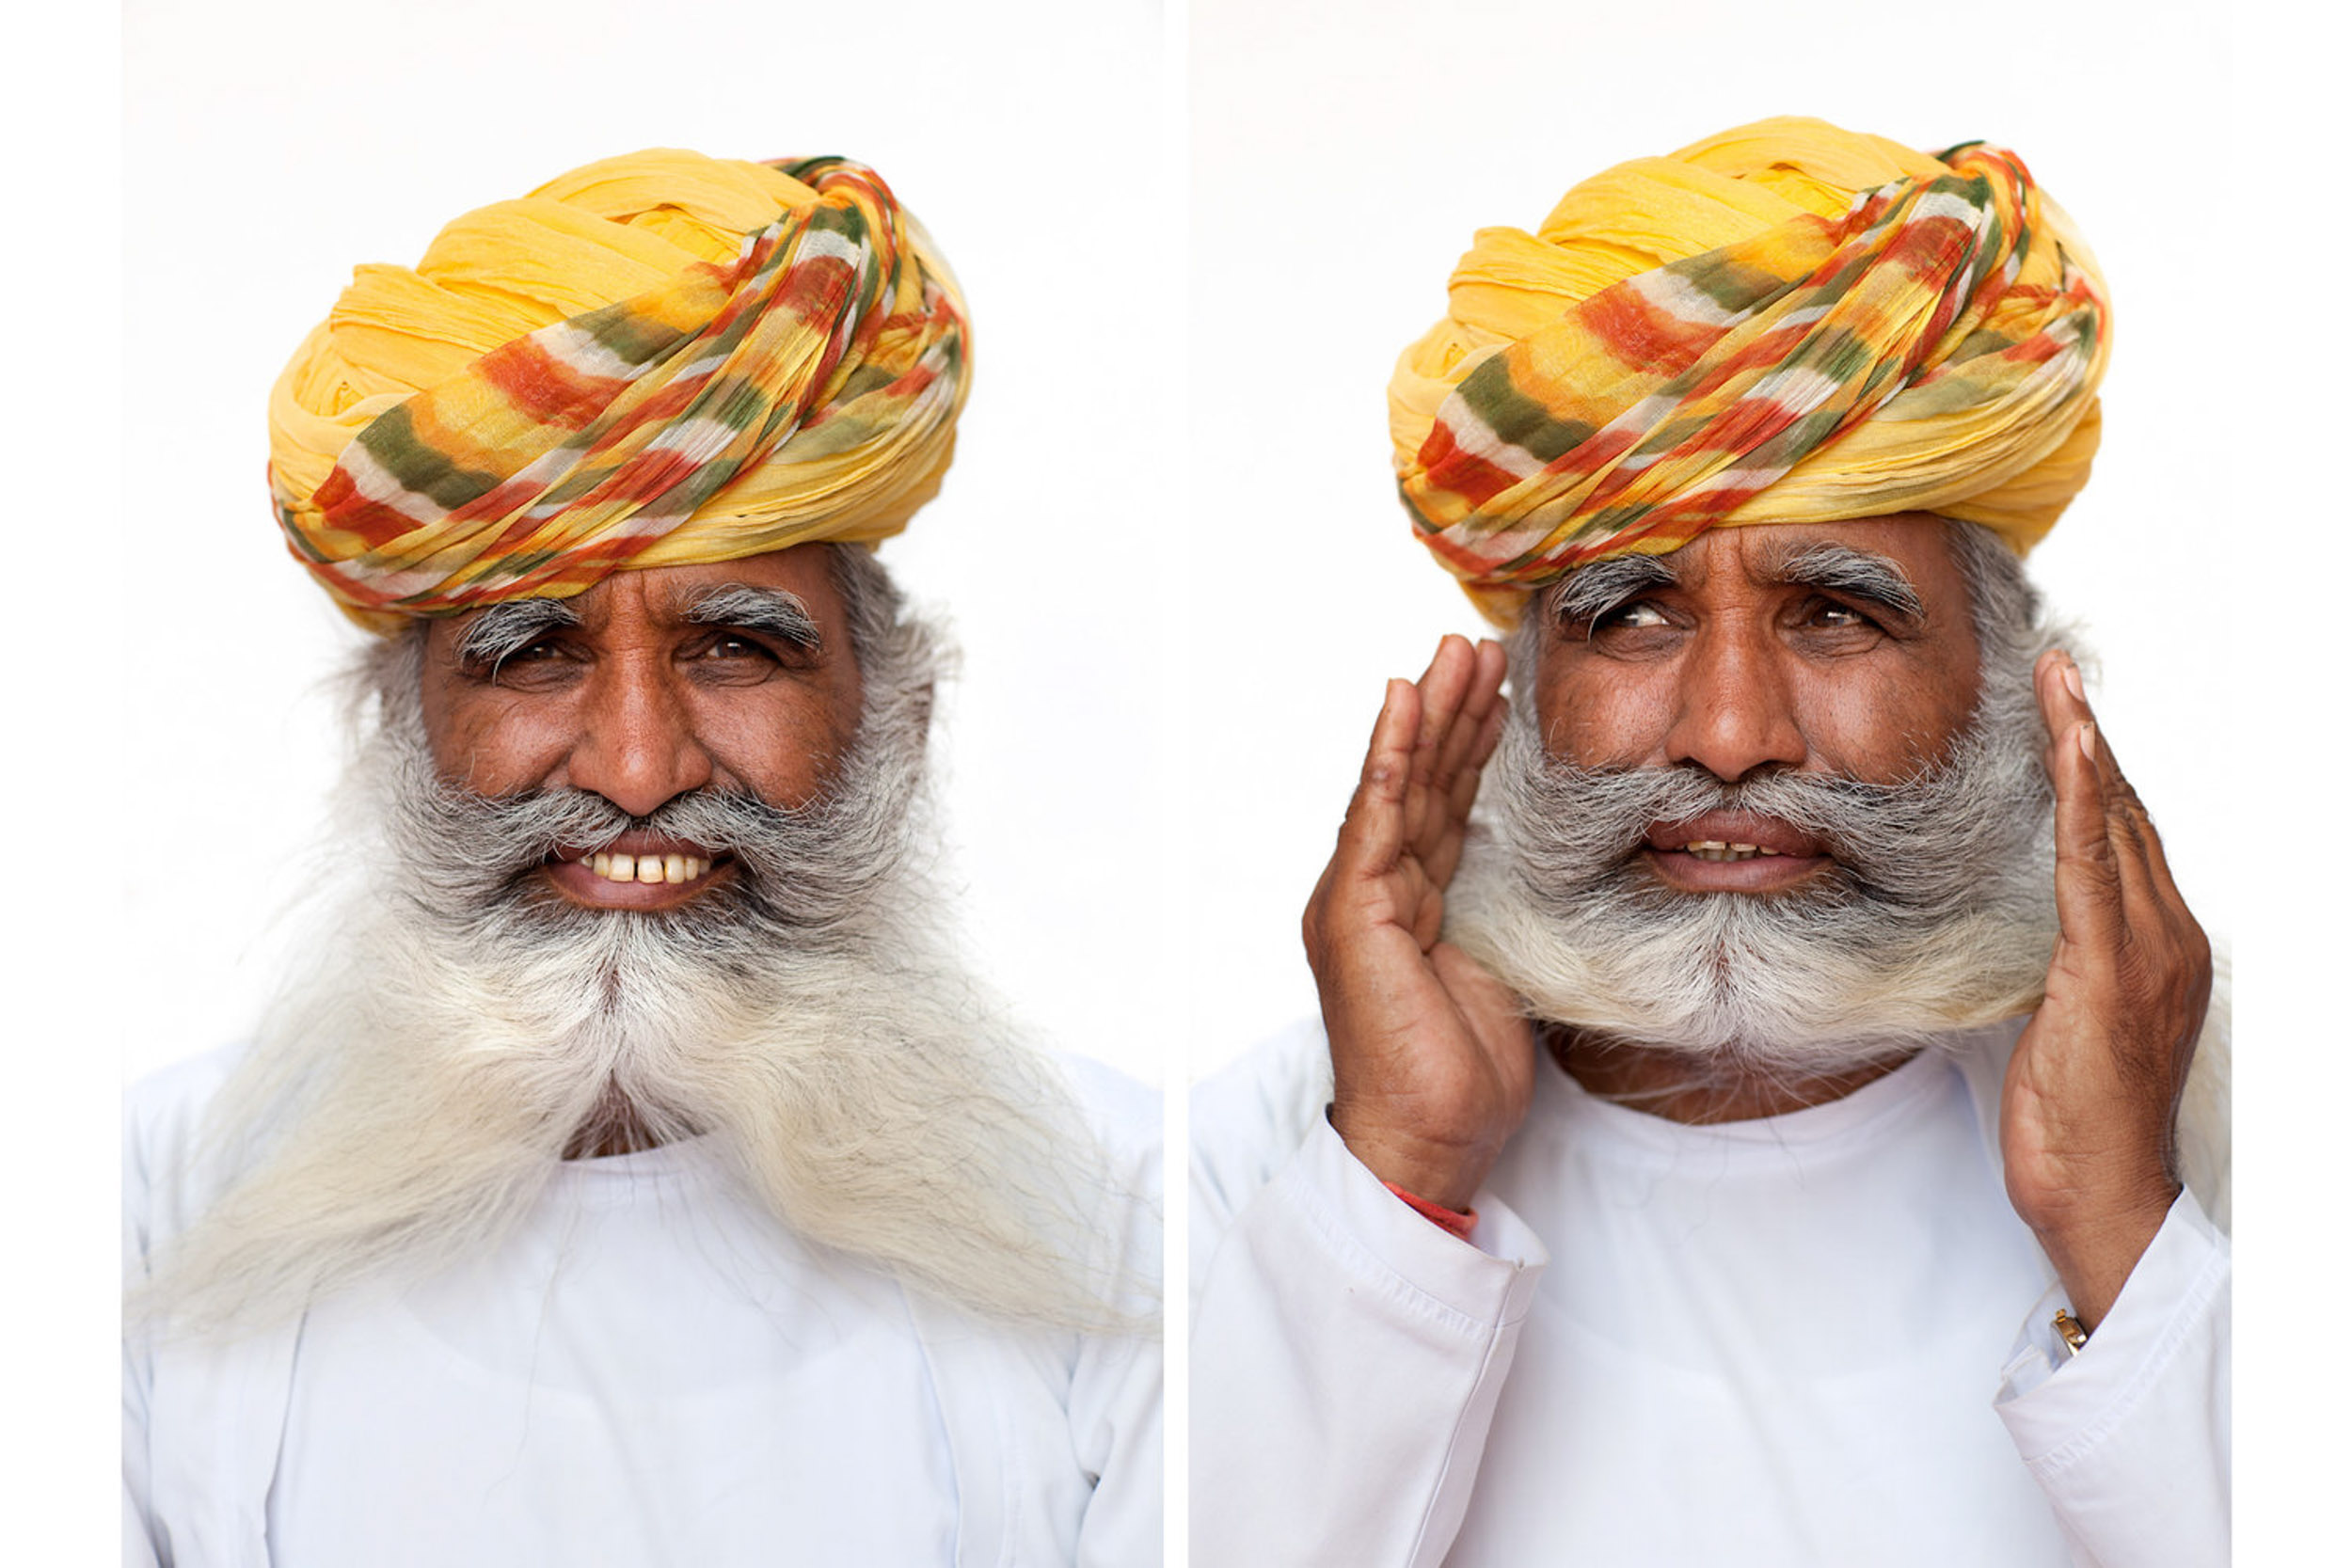 Travel-India-Rajasthan-Man-Beard-Portrait